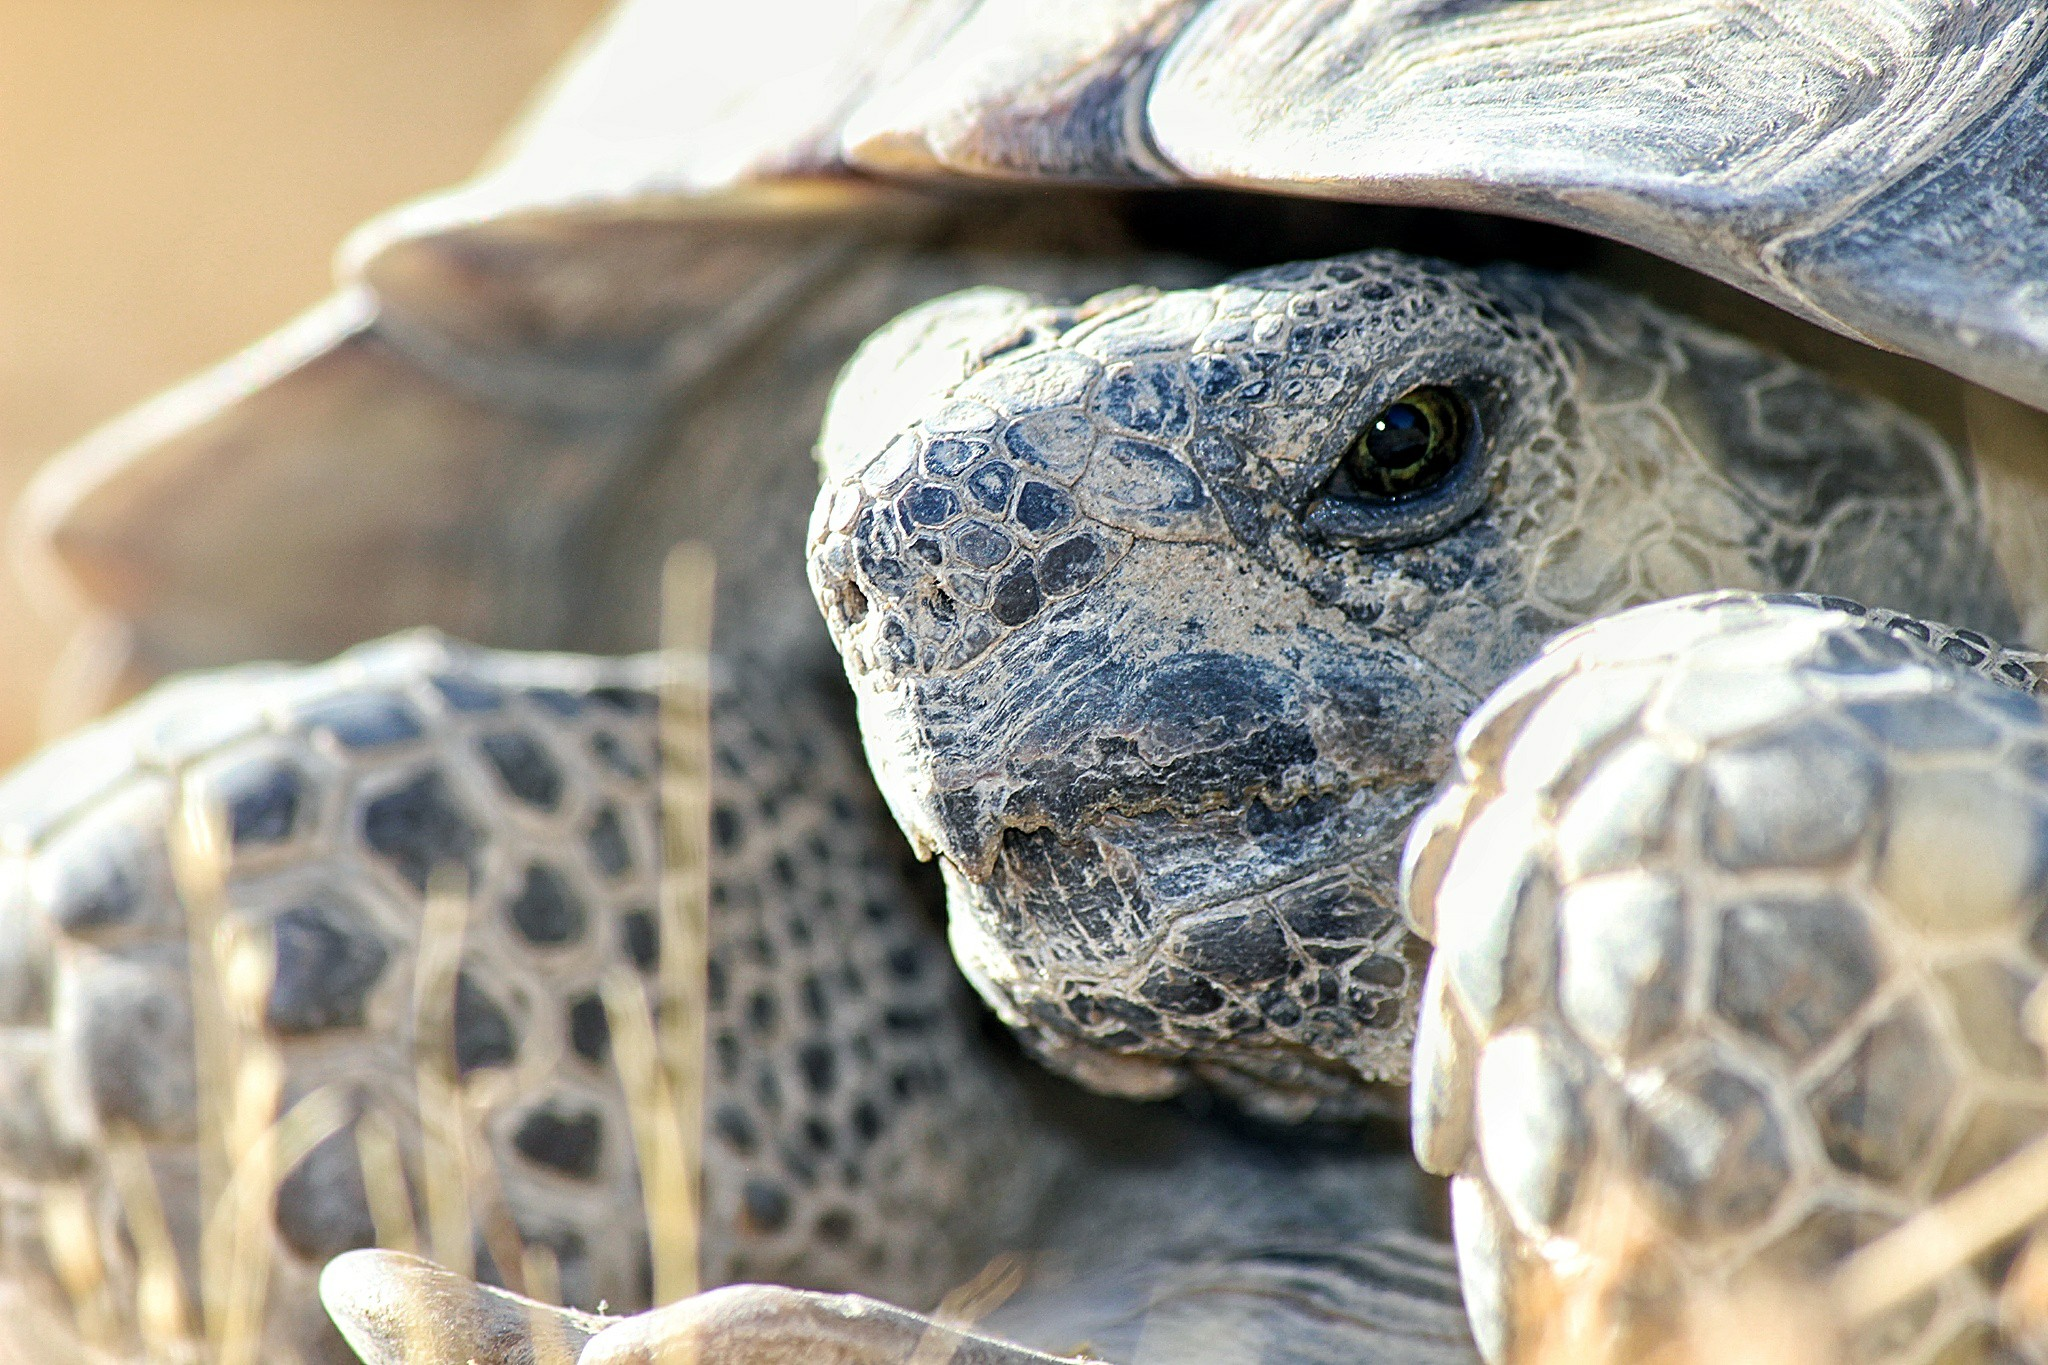 Desert Tortoise photo by Kameron Orr